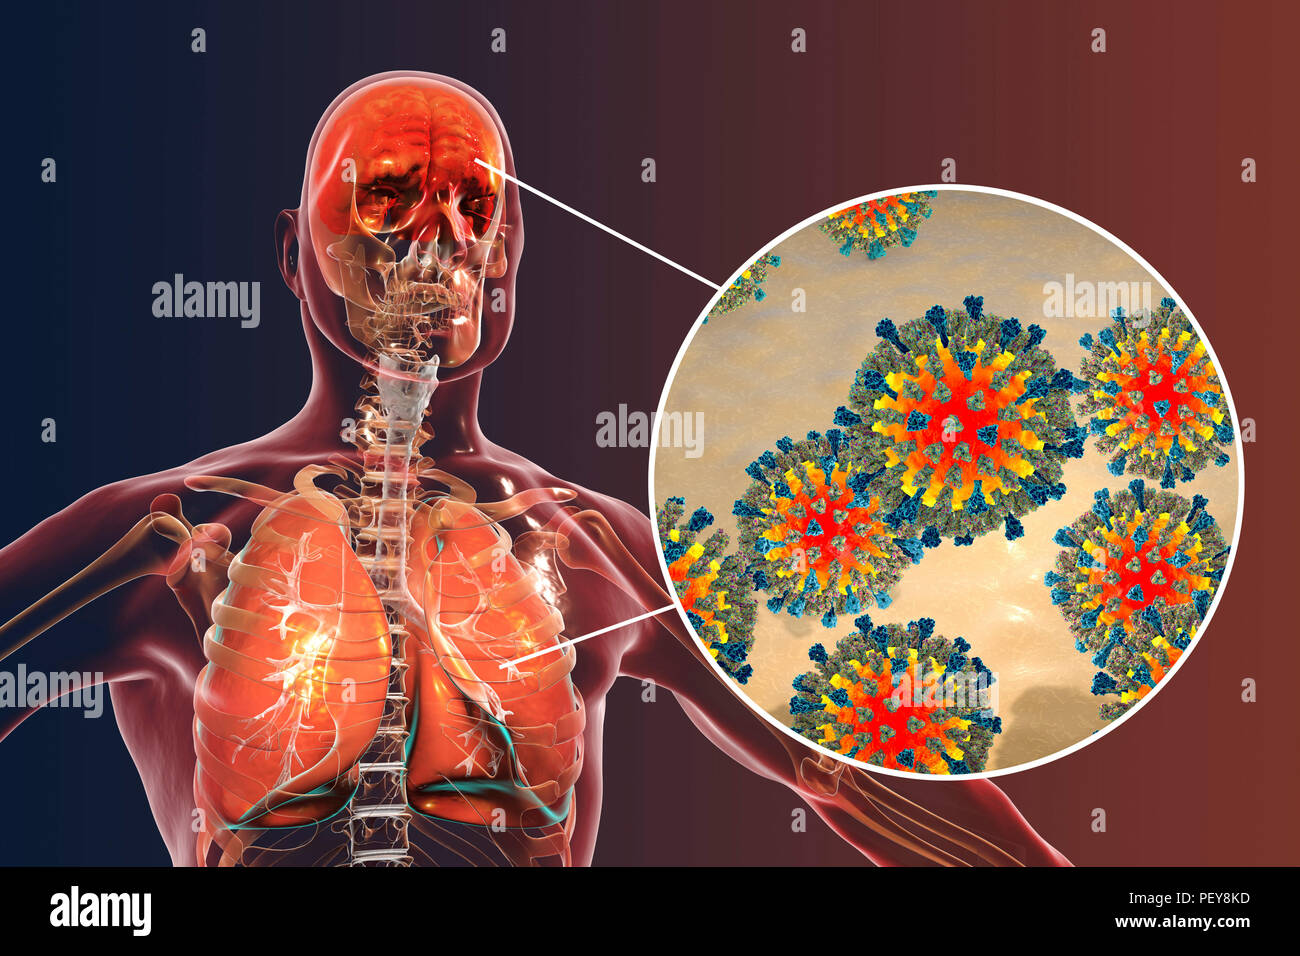 Computer illustrations showing the common complications of measles infection, such as encephalitis and pneumonia. - Stock Image